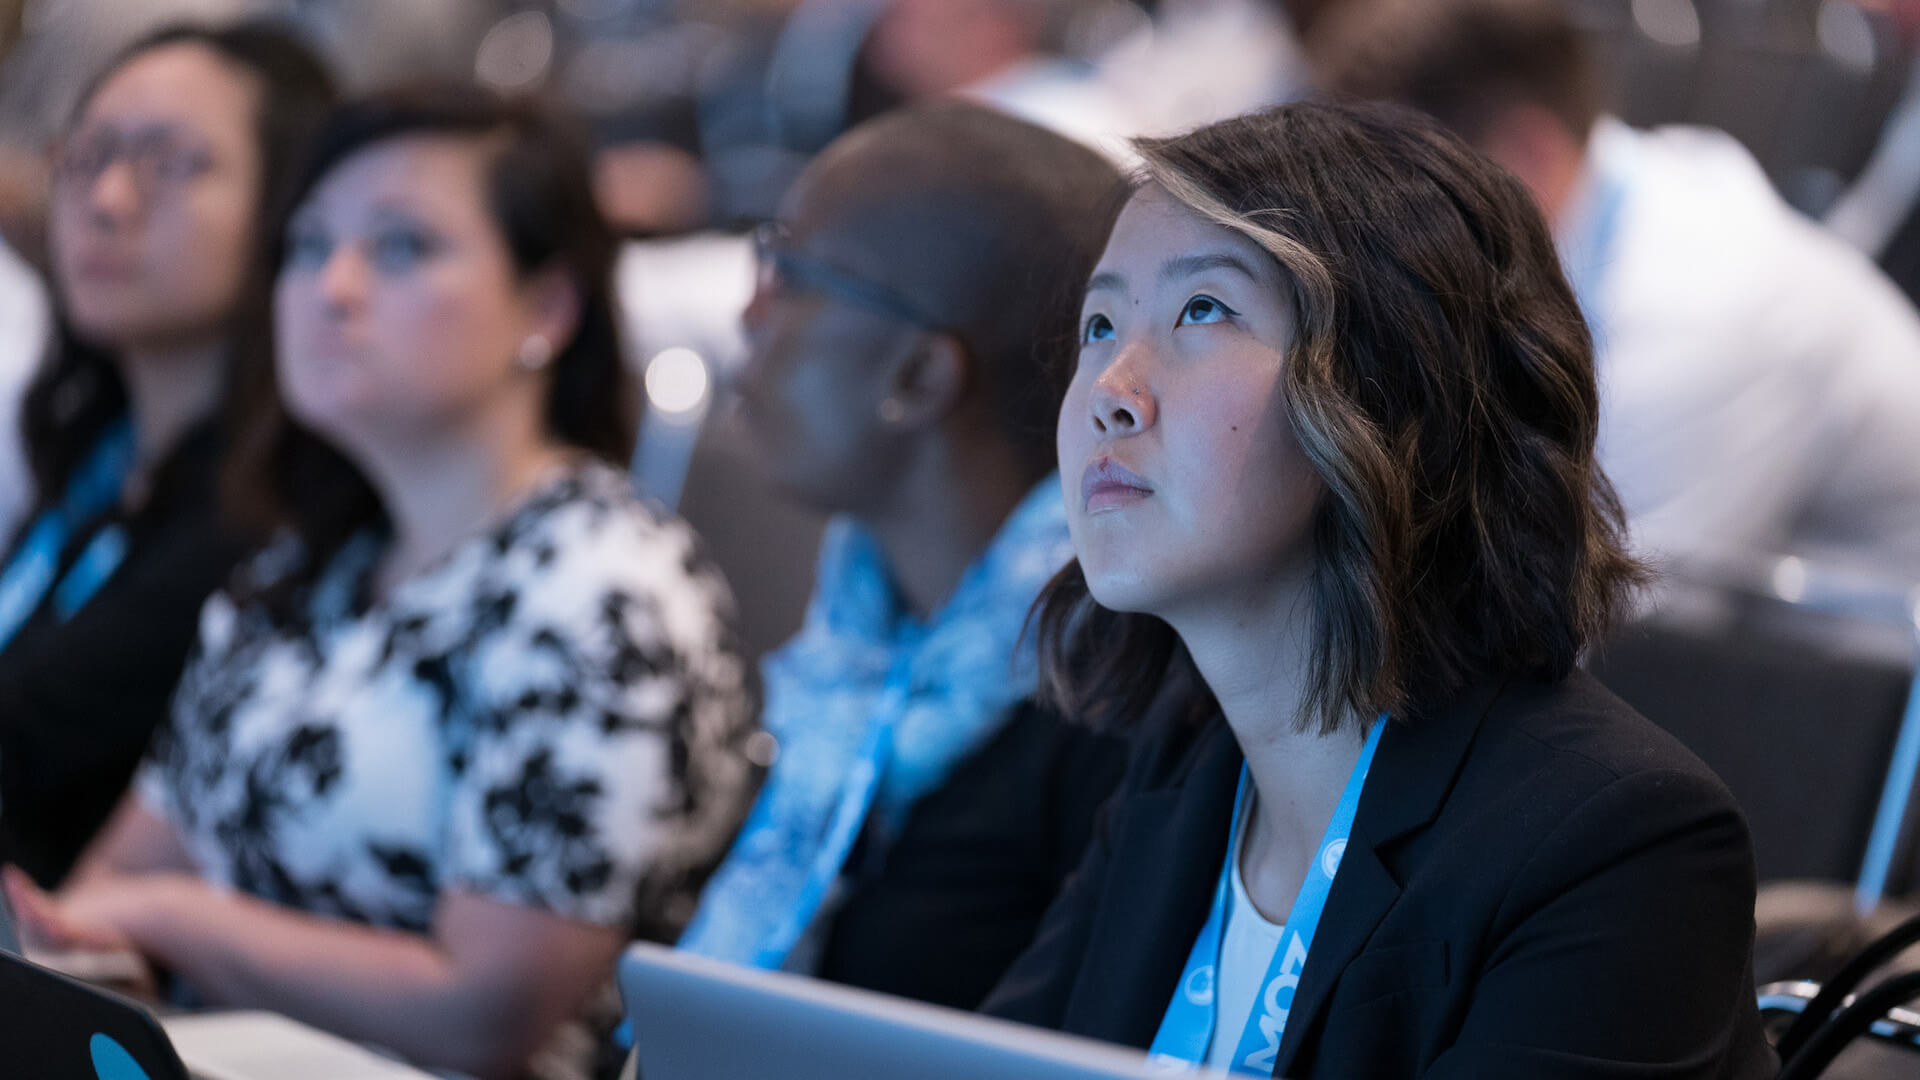 Check out the SEO & SEM sessions coming to SMX East